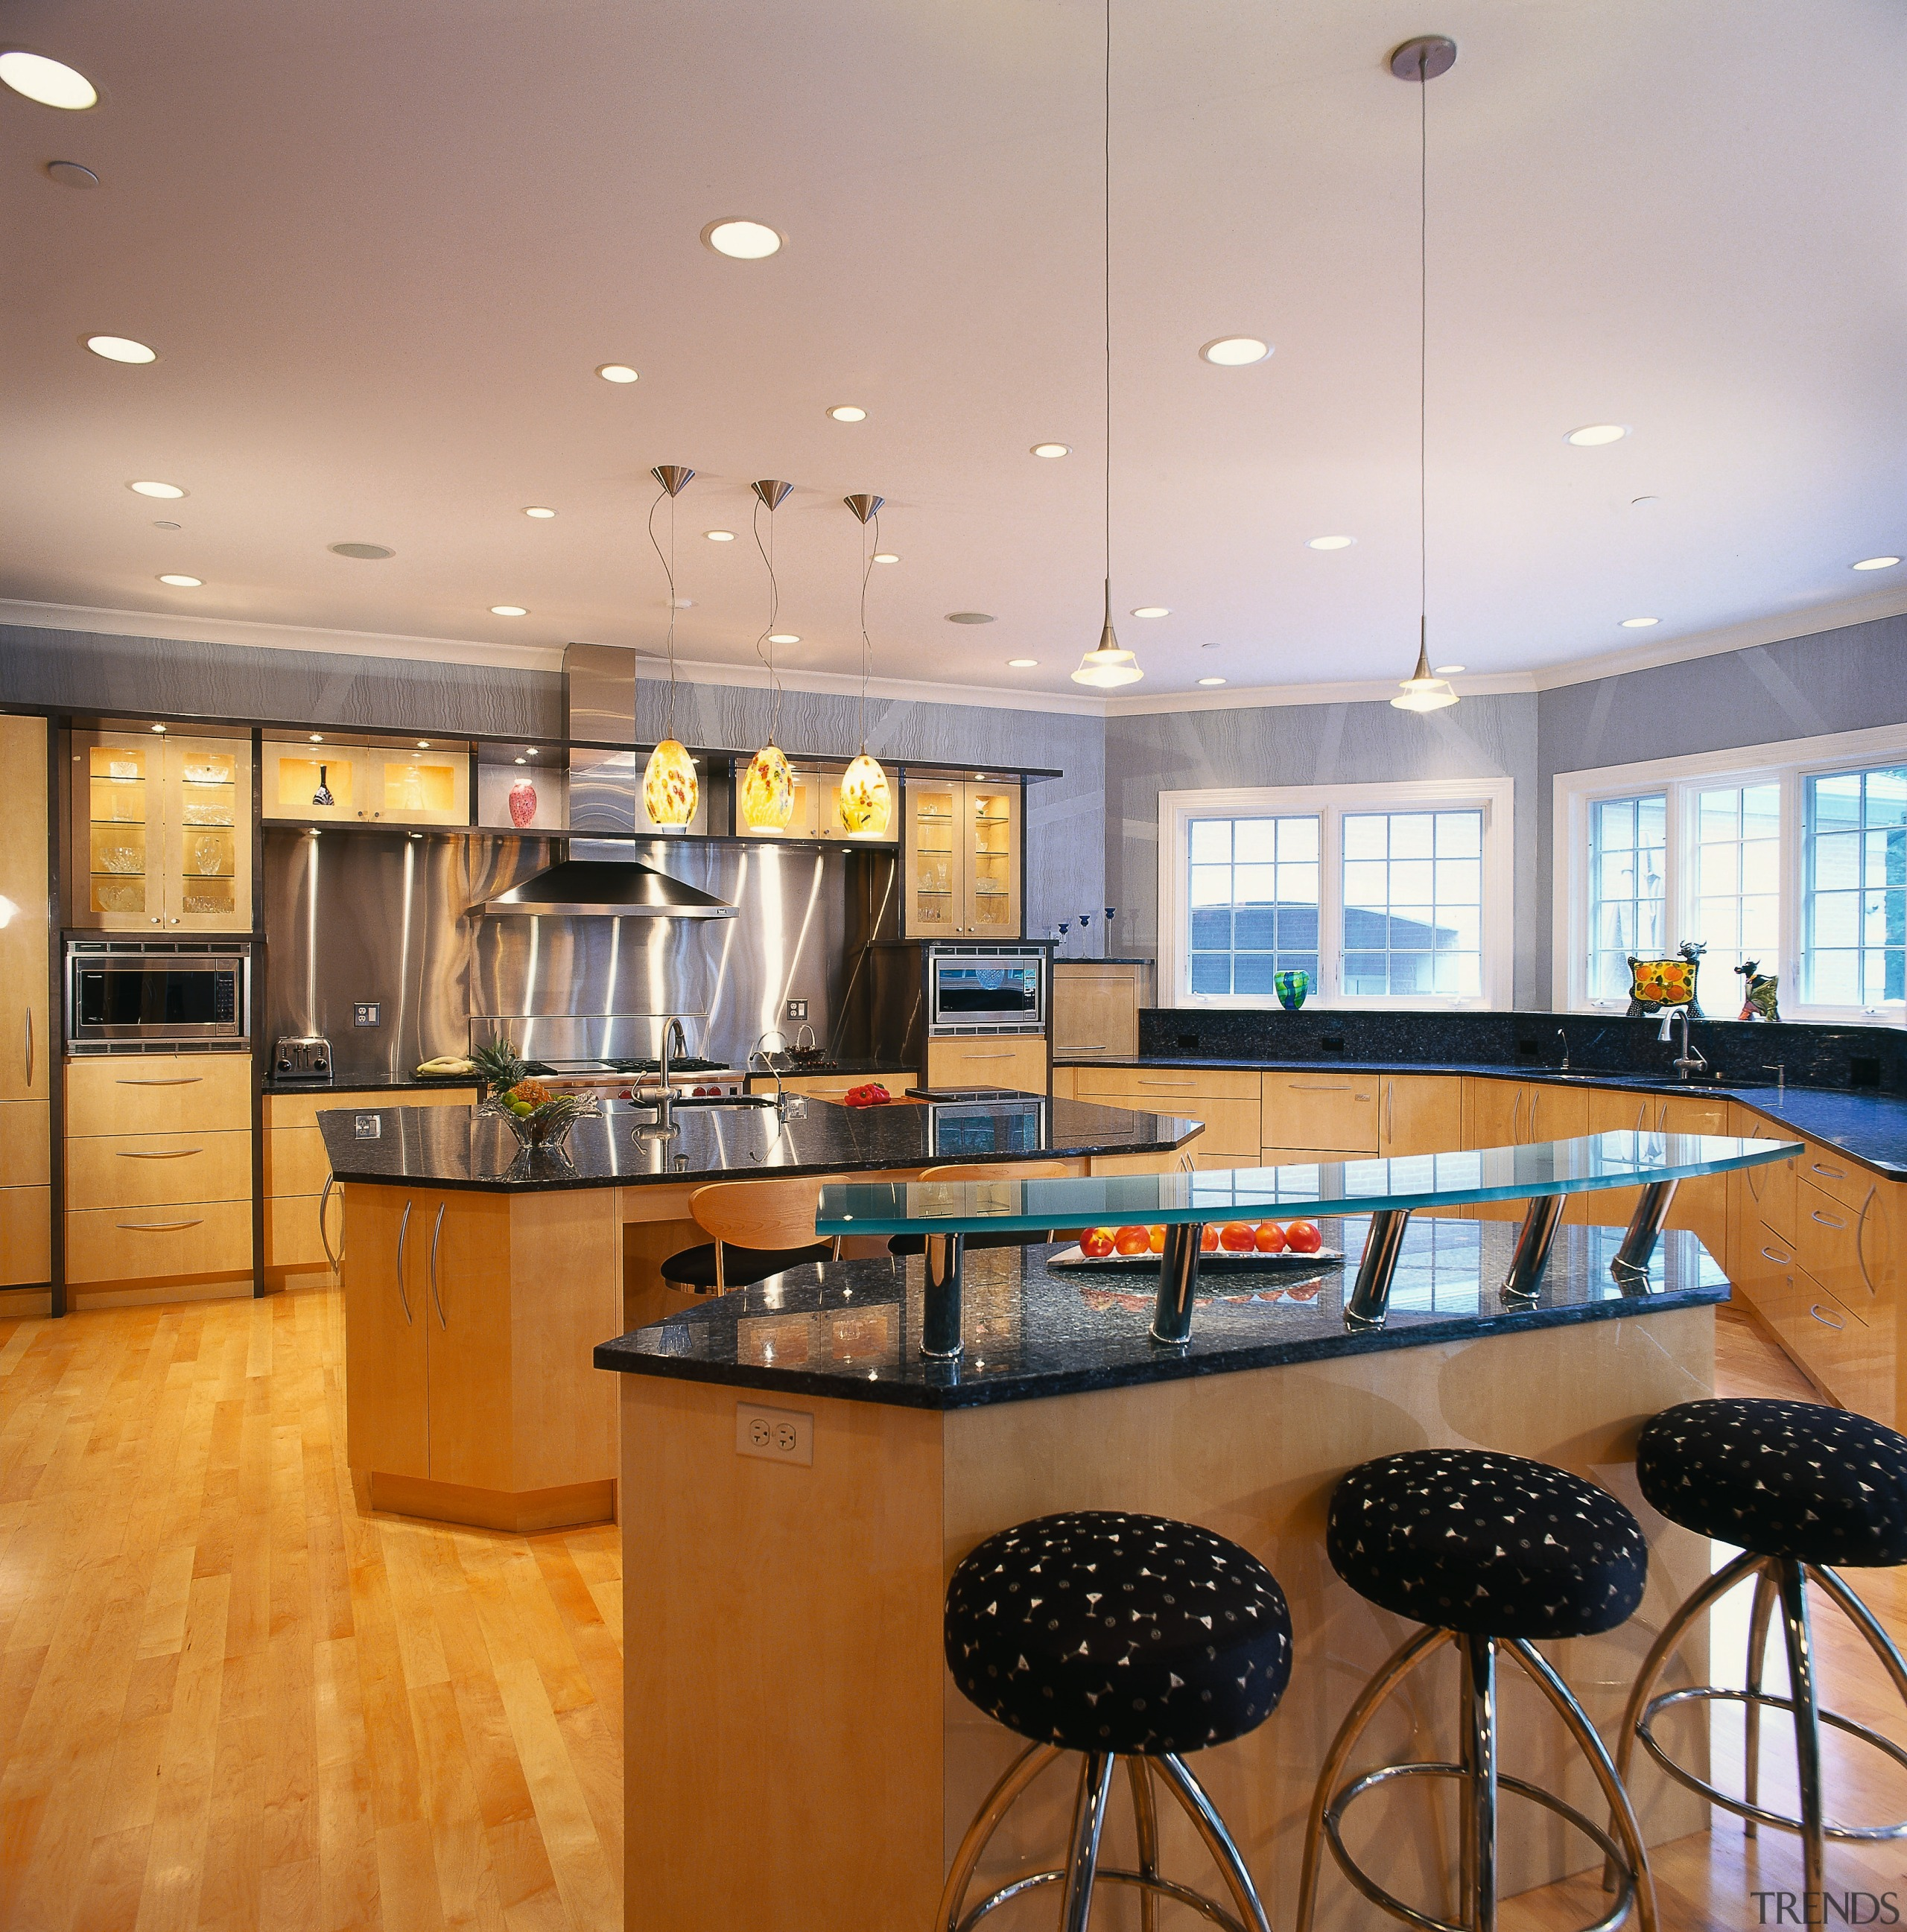 Broad view of the home's kitchen area - ceiling, countertop, interior design, kitchen, real estate, room, gray